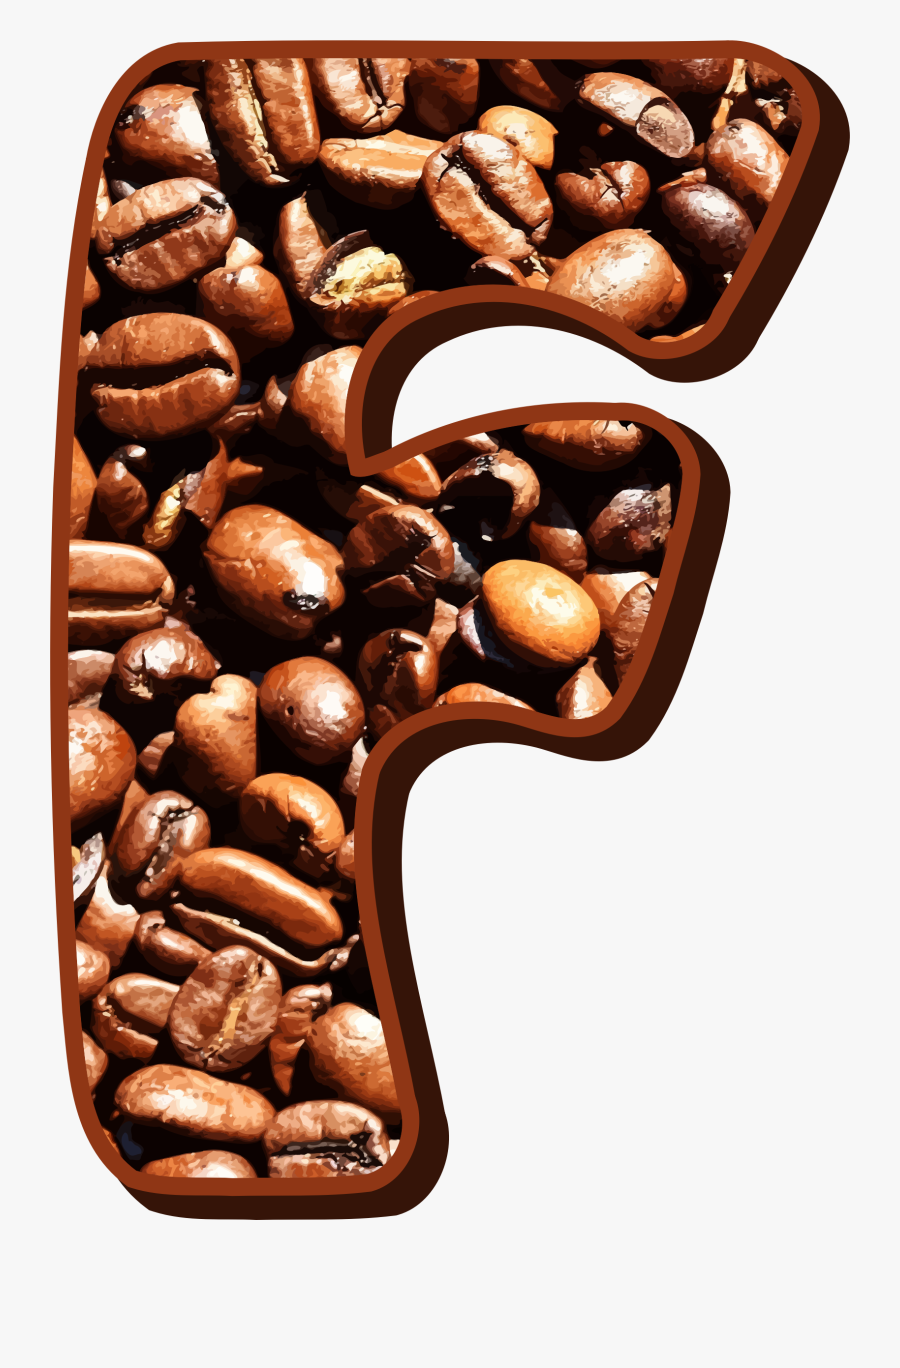 Coffee,commodity,food - Coffee Beans Letter C, Transparent Clipart